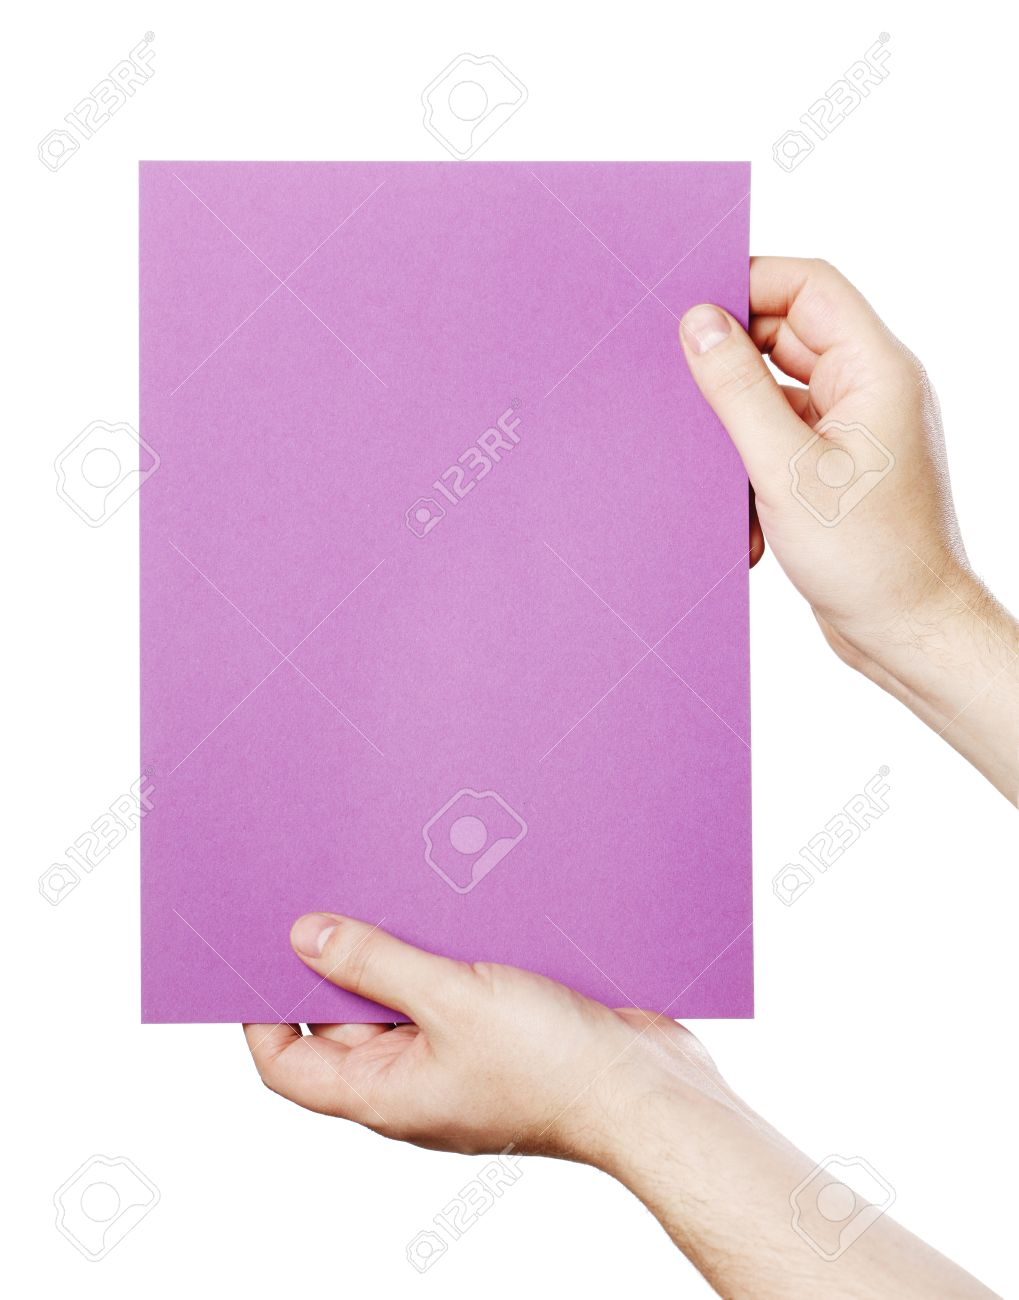 Man holding a blank purple paper against white background. Stock Photo - 18724957